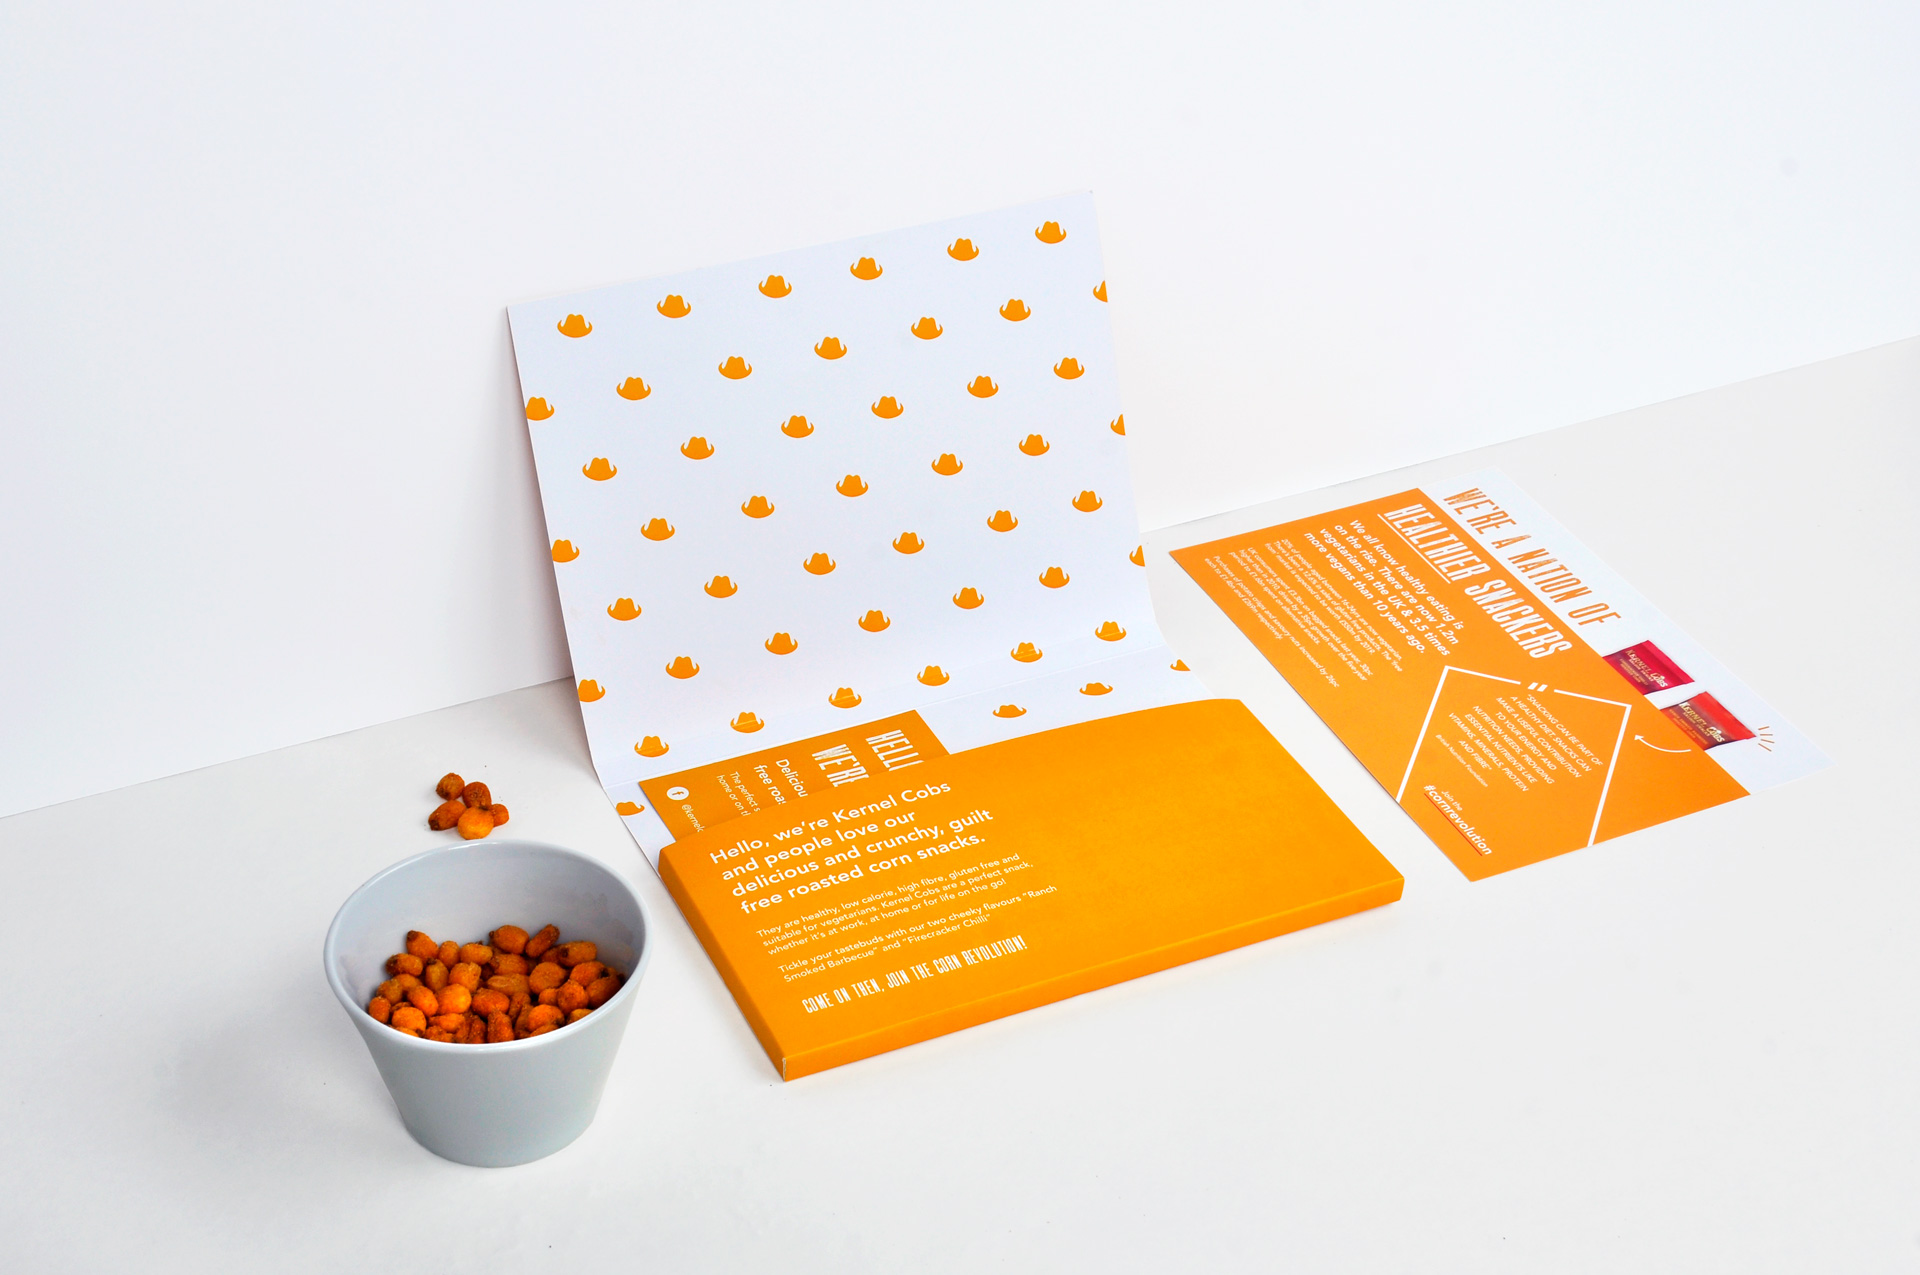 Branding, graphic design, brand, snack brand, healthy, wellbeing